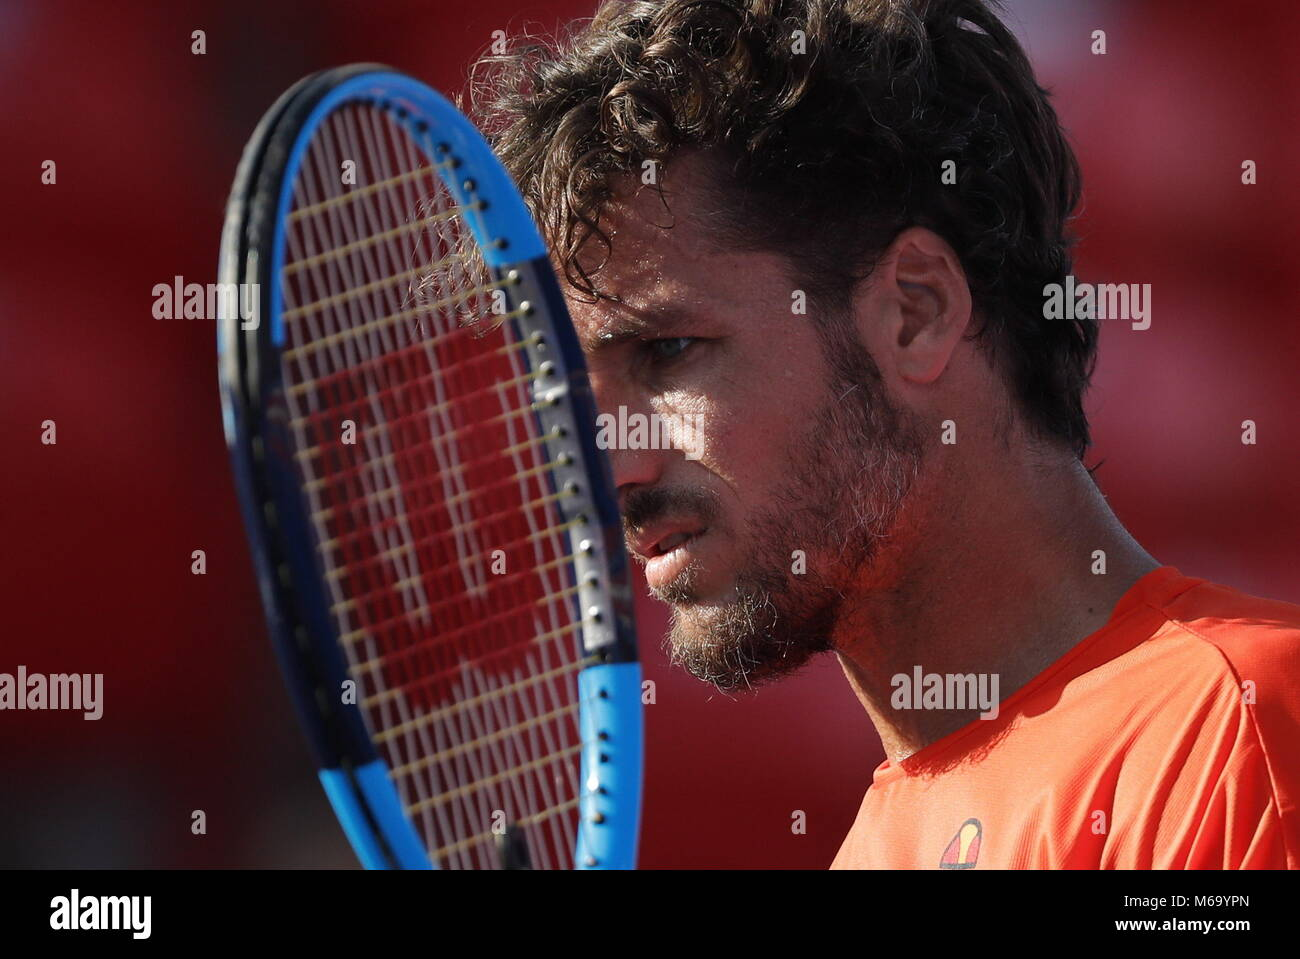 Spanish tennis player Feliciano Lopez in action against US Jared Donaldson during their Mexico Tennis Open quarter - Stock Image